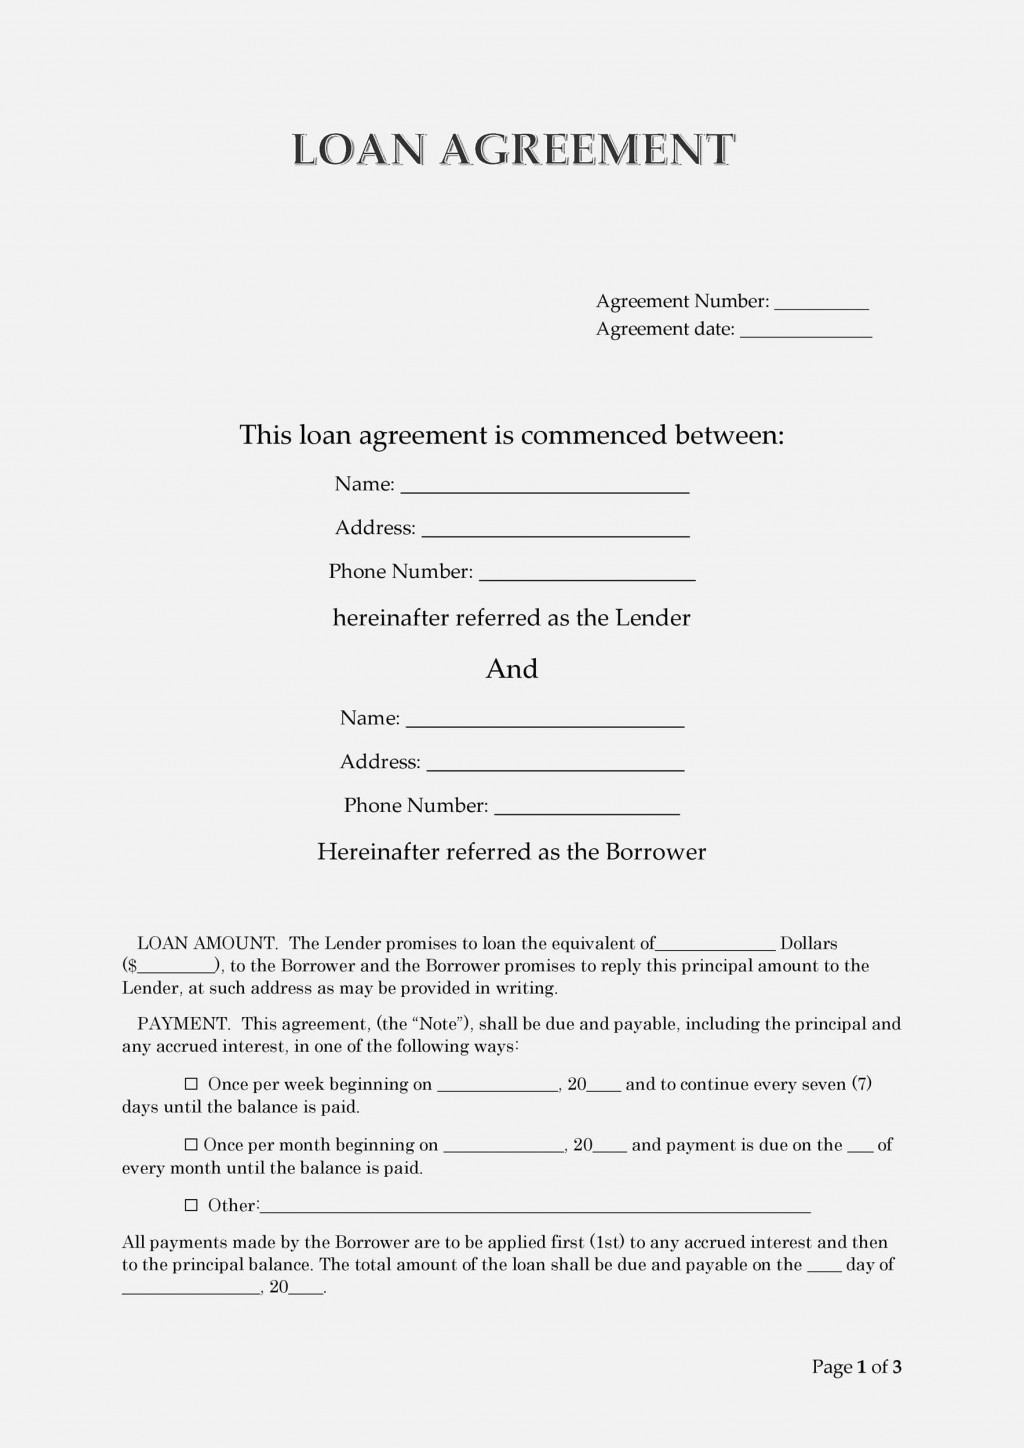 006 Unforgettable Free Loan Agreement Template Inspiration  Ontario Word Pdf Australia South AfricaLarge